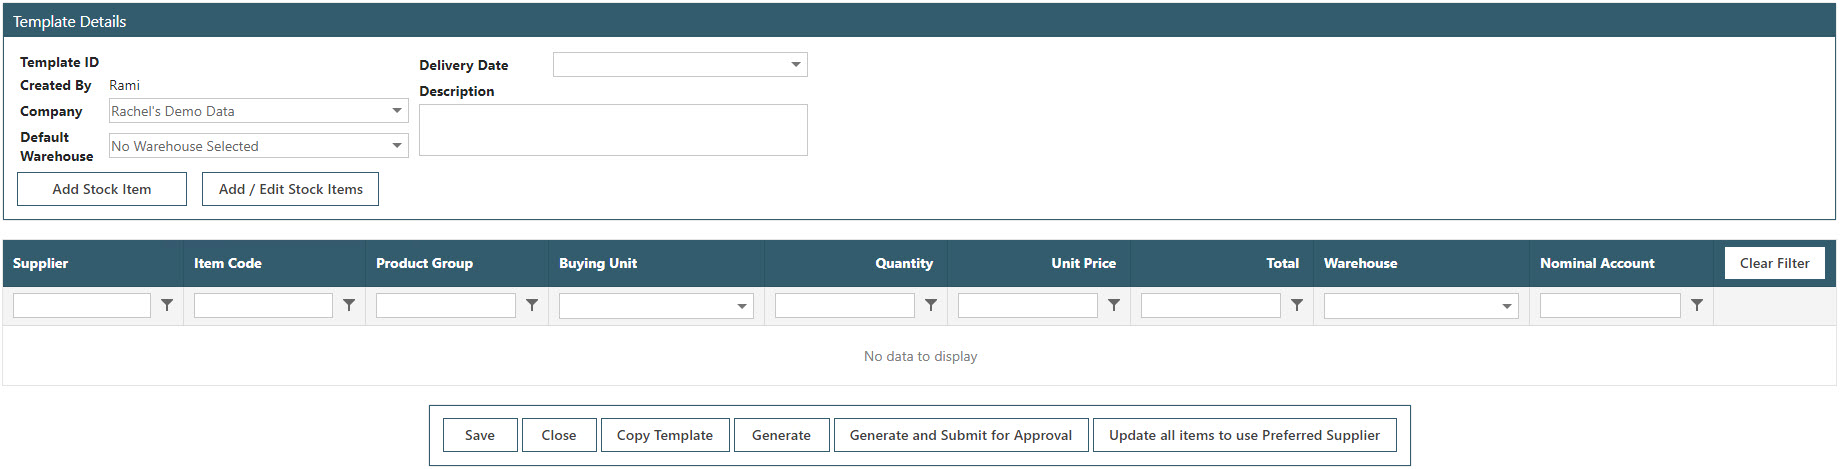 Sicon WAP Purchase Requisitions Help and User Guide - Requisition HUG Section 17.2 Image 2